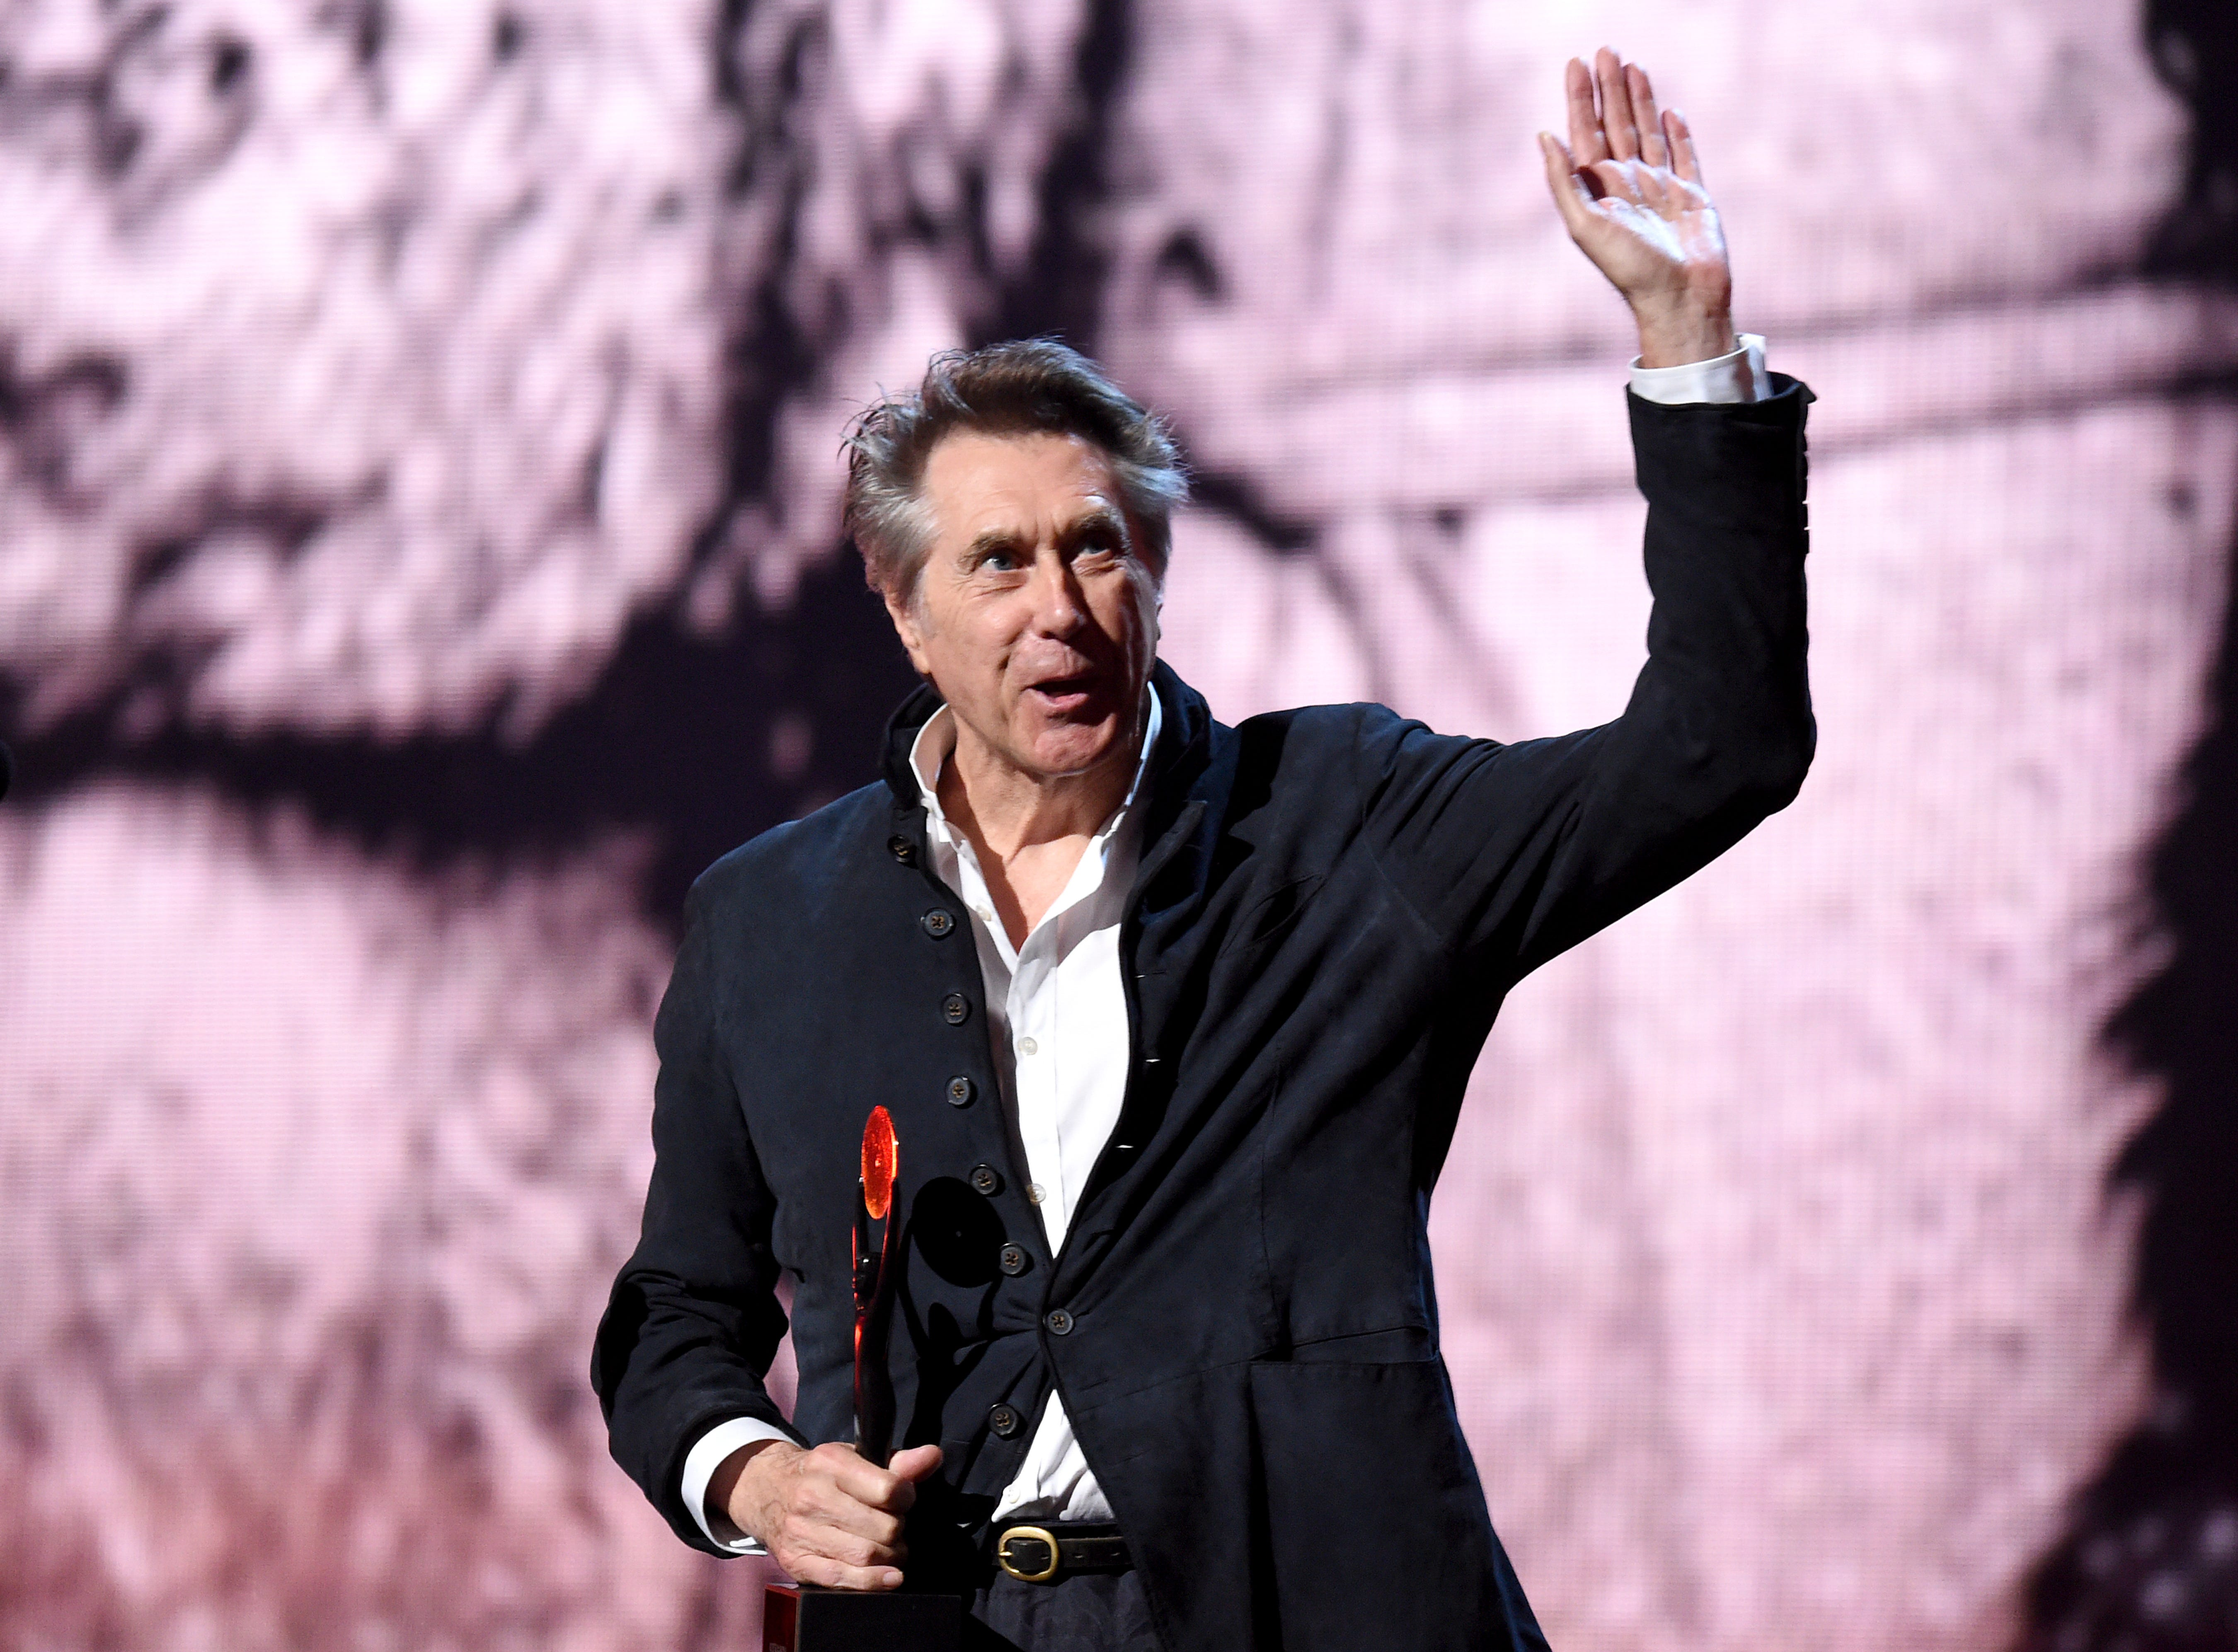 Inductee Bryan Ferry of Roxy Music speaks onstage.